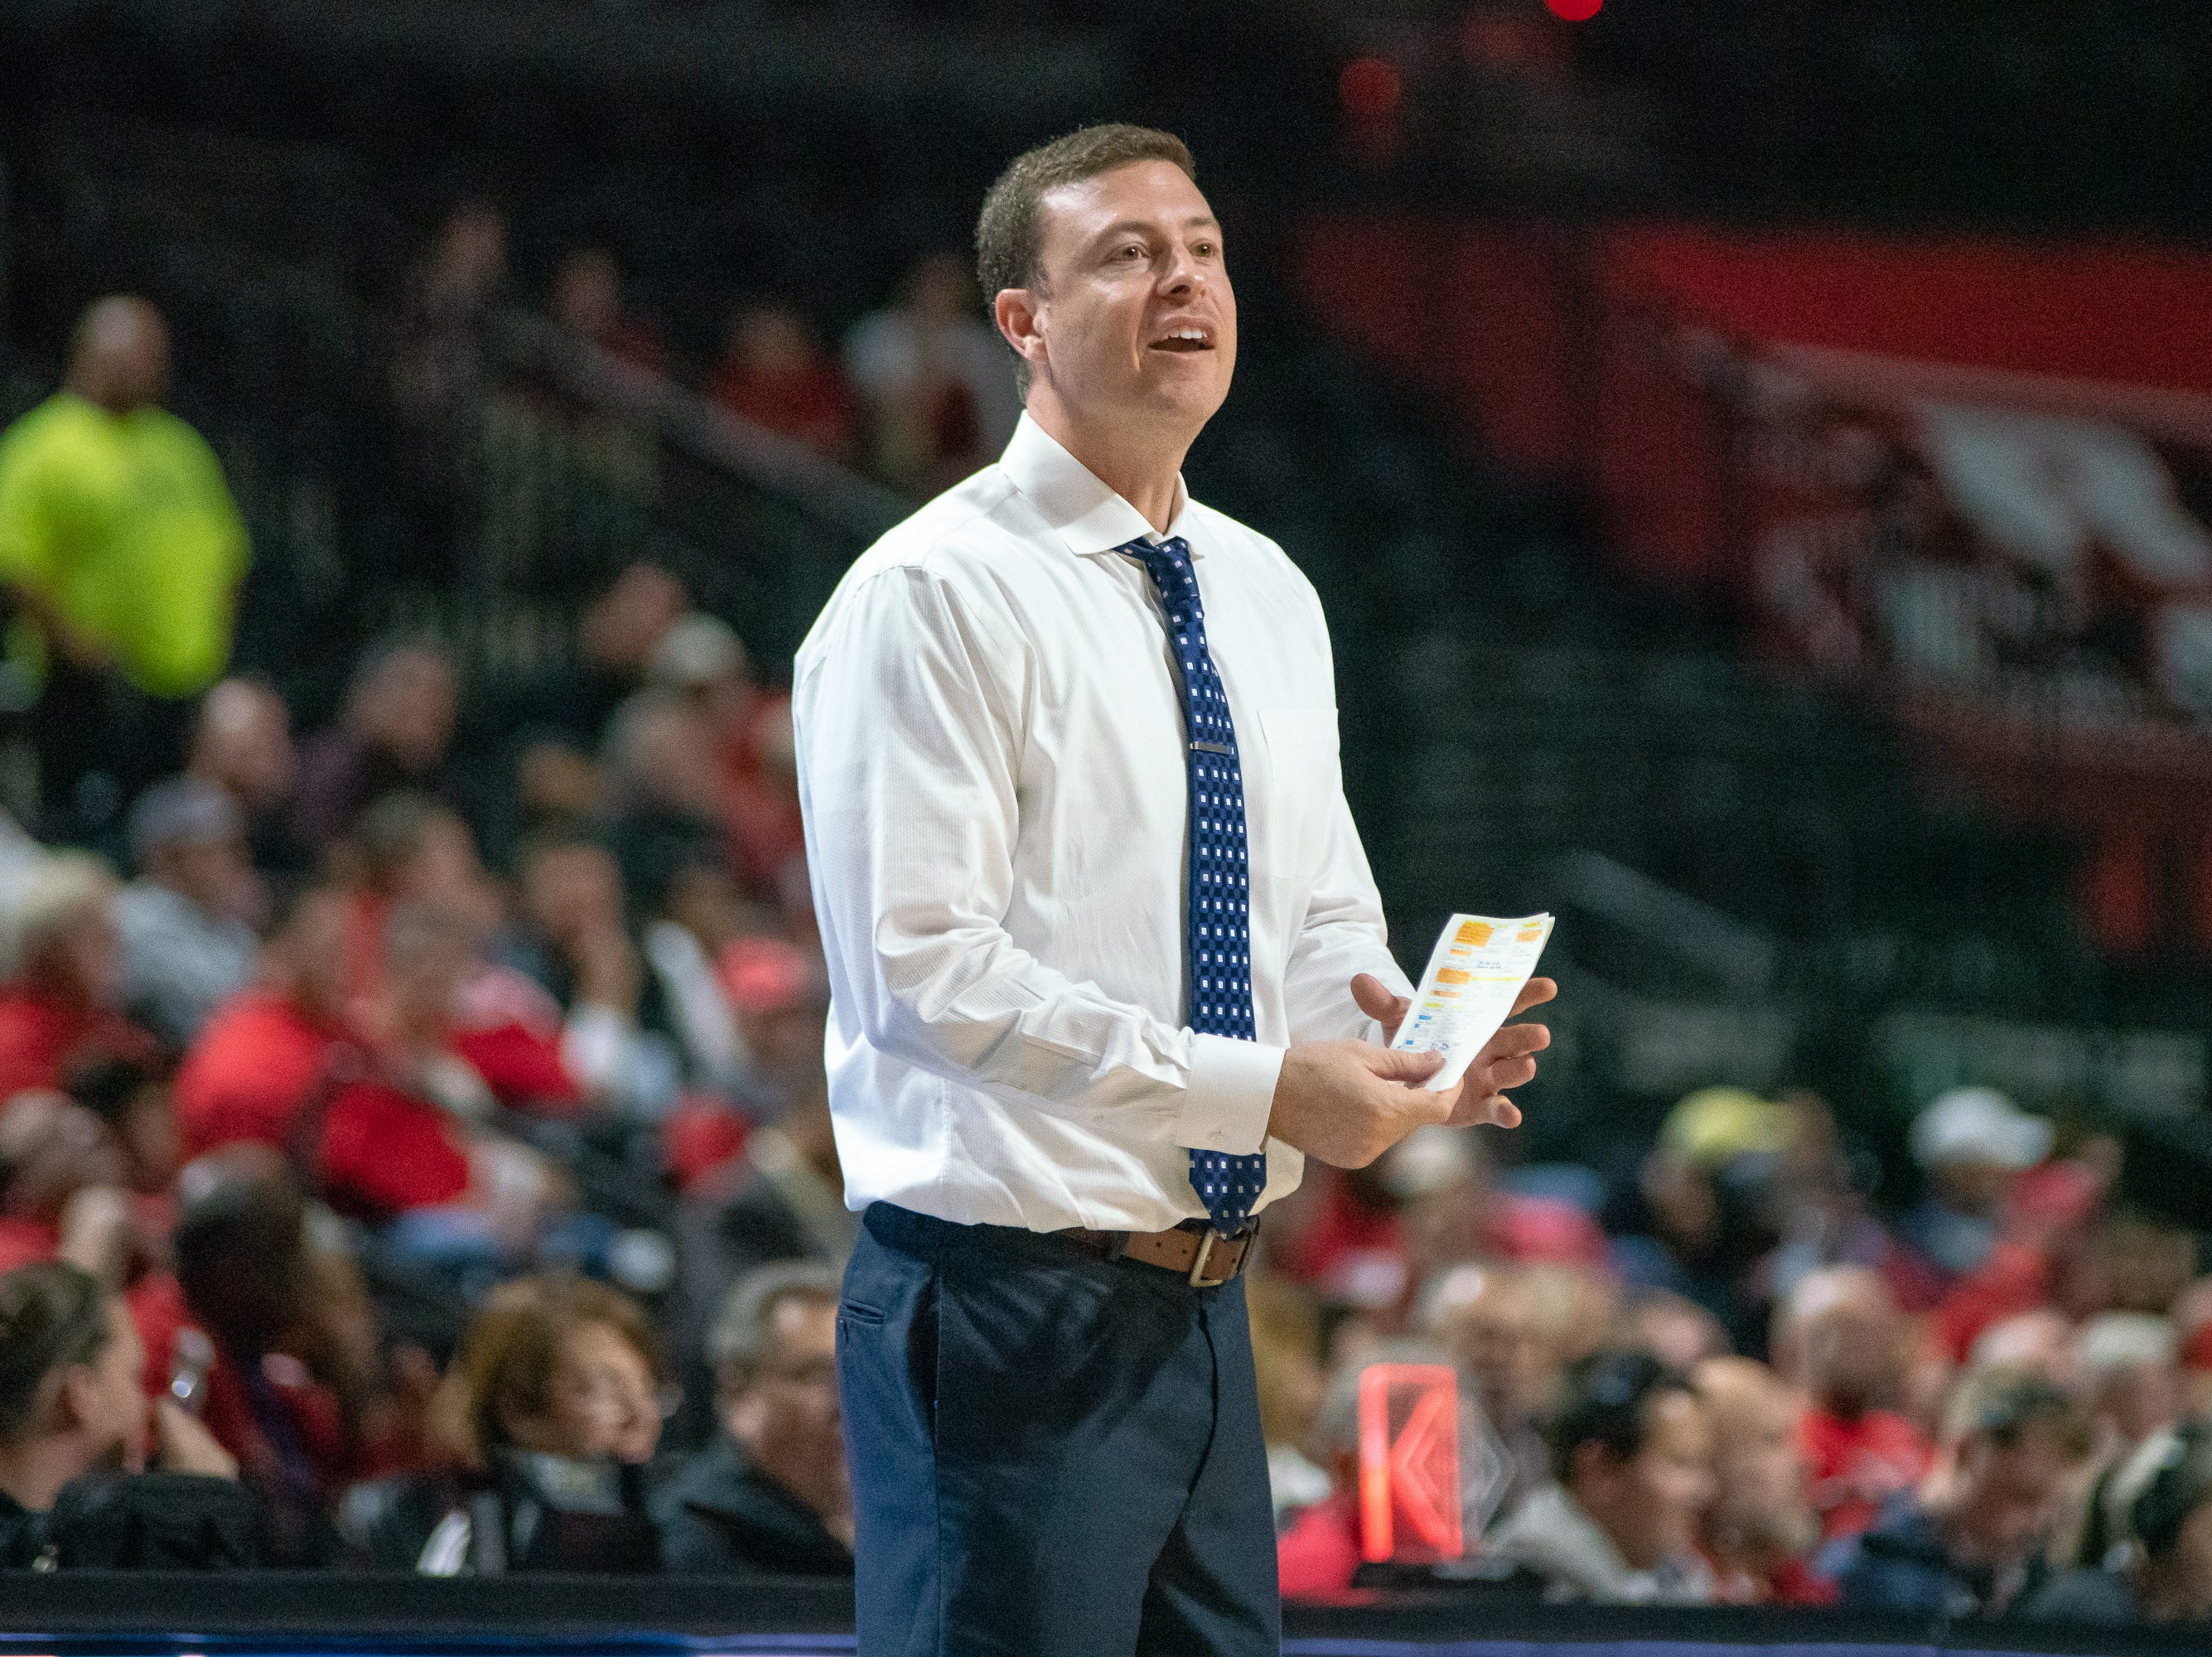 Georgia Southern head basketball coach Mark Byington communicates with his players on the court as the Ragin' Cajuns take on the Georgia Southern Eagles at the Cajundome on Feb. 6, 2019.